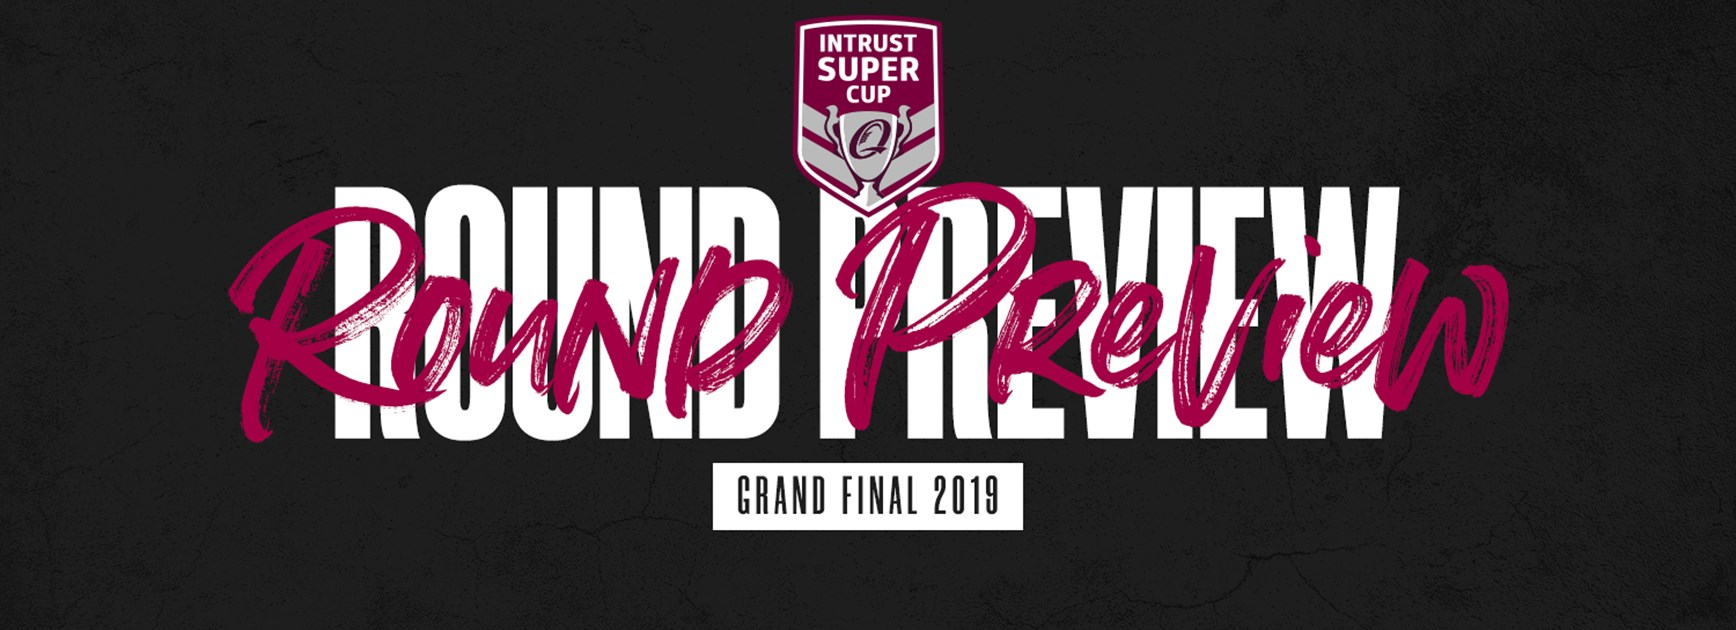 Intrust Super Cup grand final: by the numbers